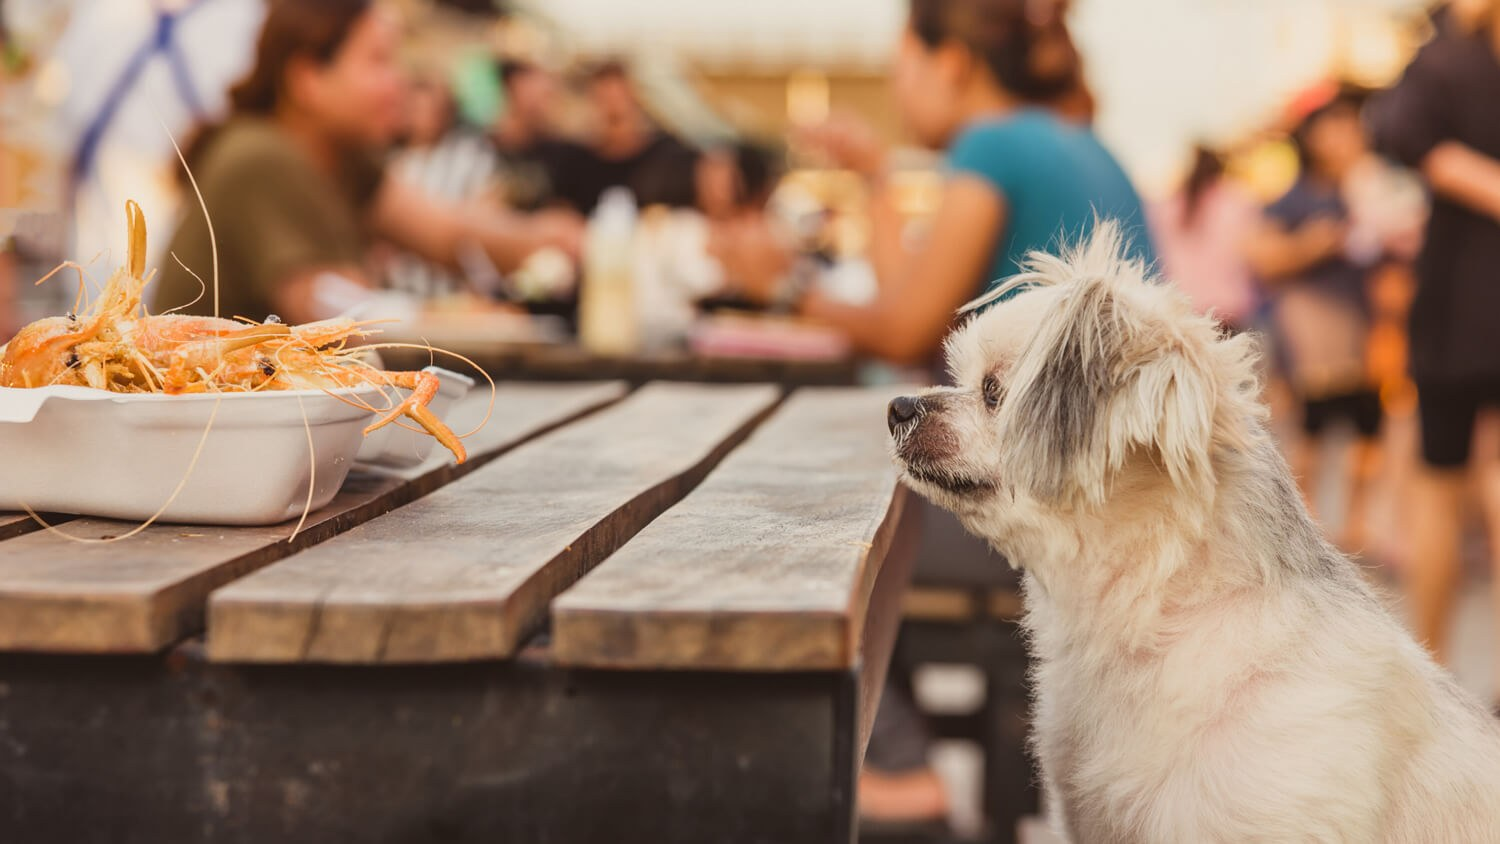 dog-at-table-looking-at-food